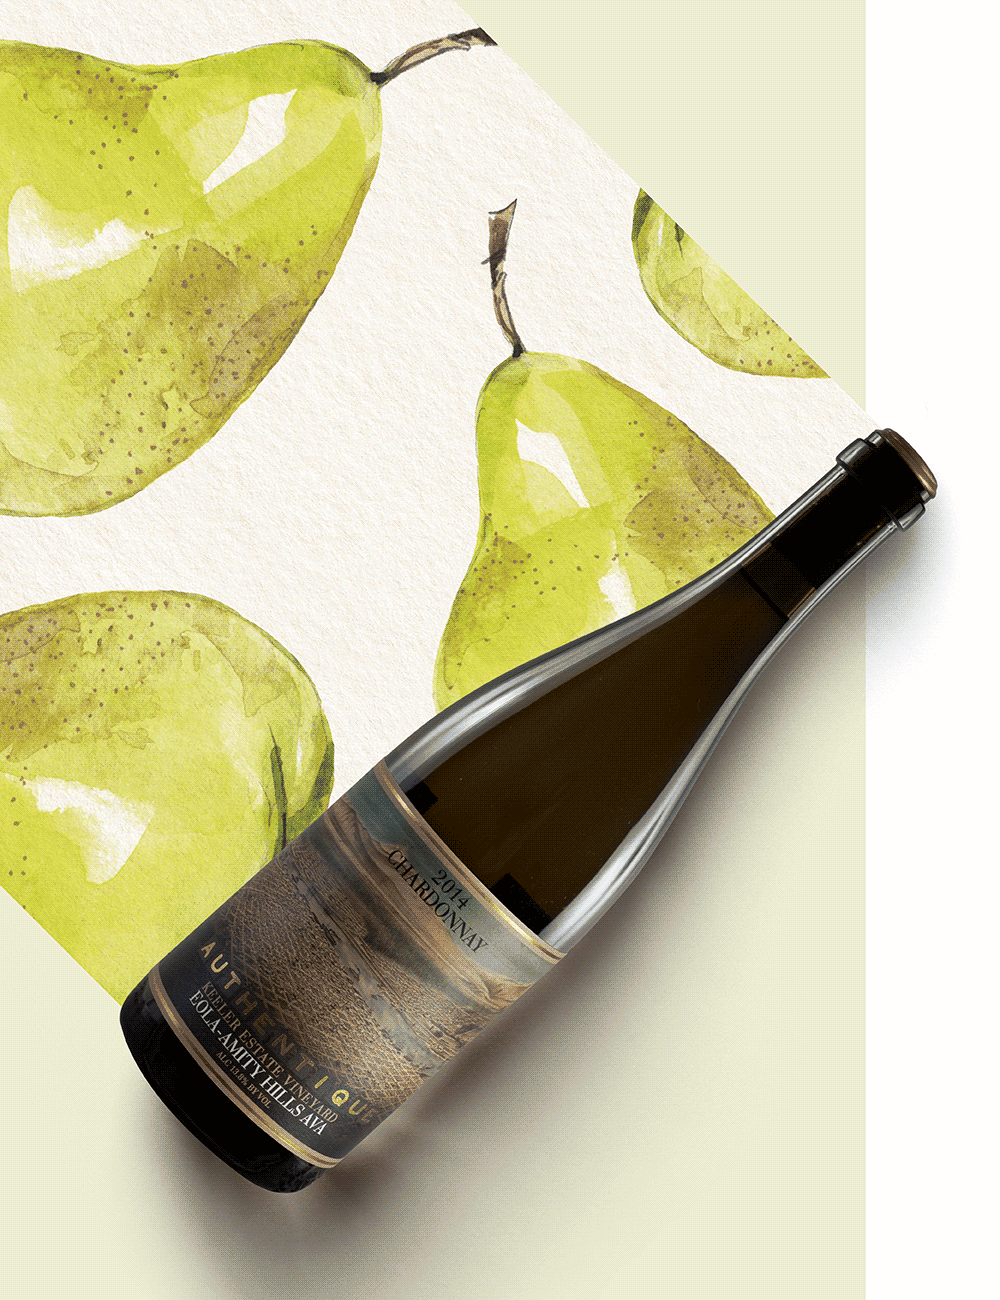 Authentique Keeler Estate Chardonnay 2015